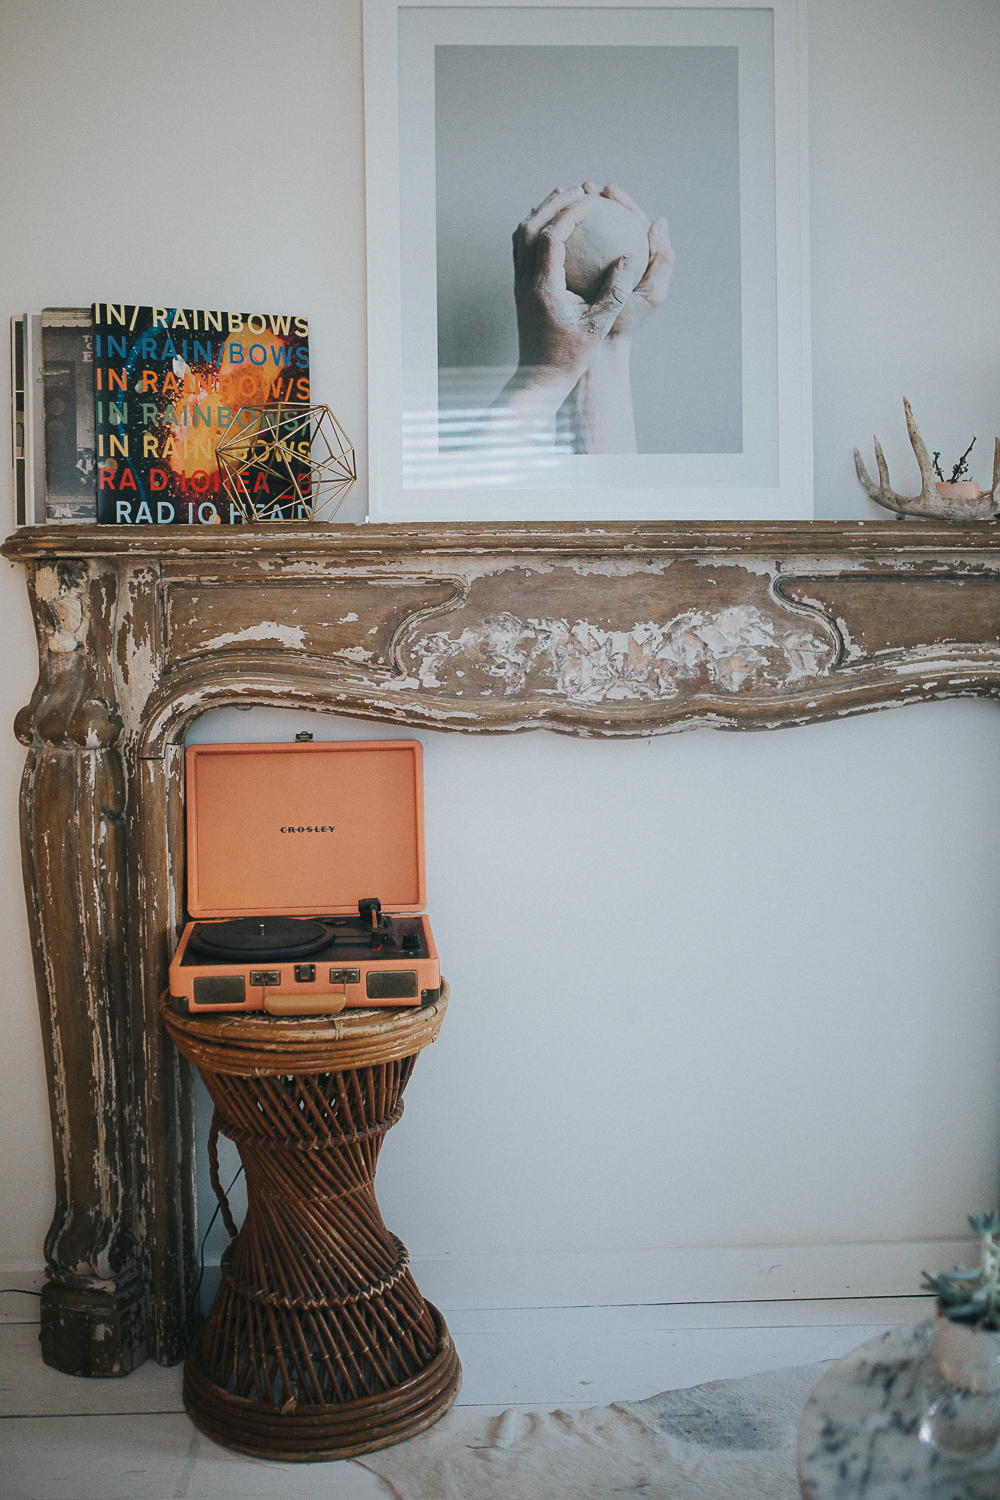 crosley-record-player-decor